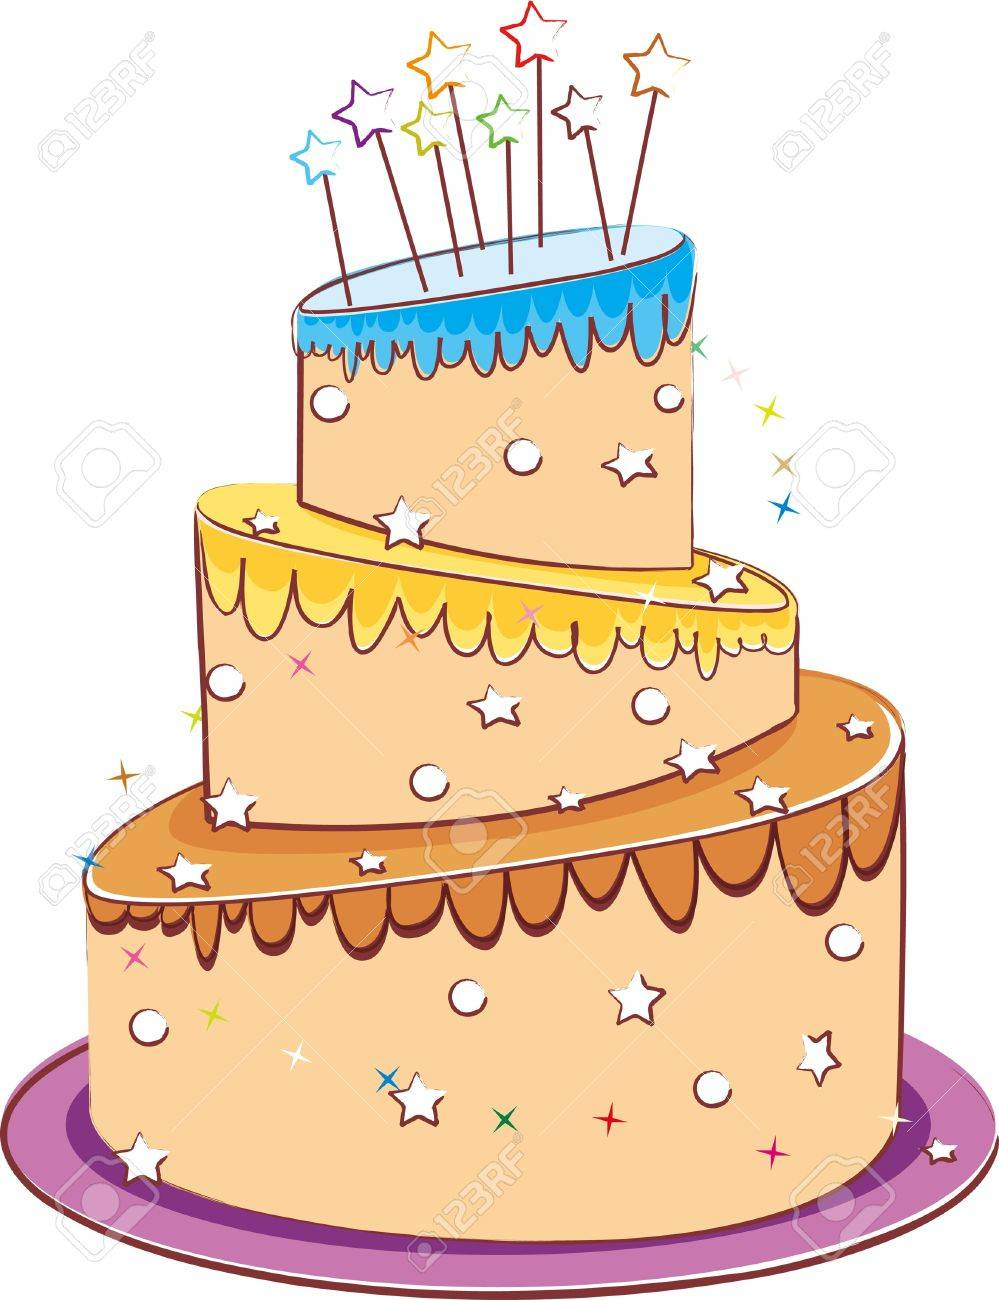 Wedding Cake Isolated On White Royalty Free Cliparts, Vectors, And ...